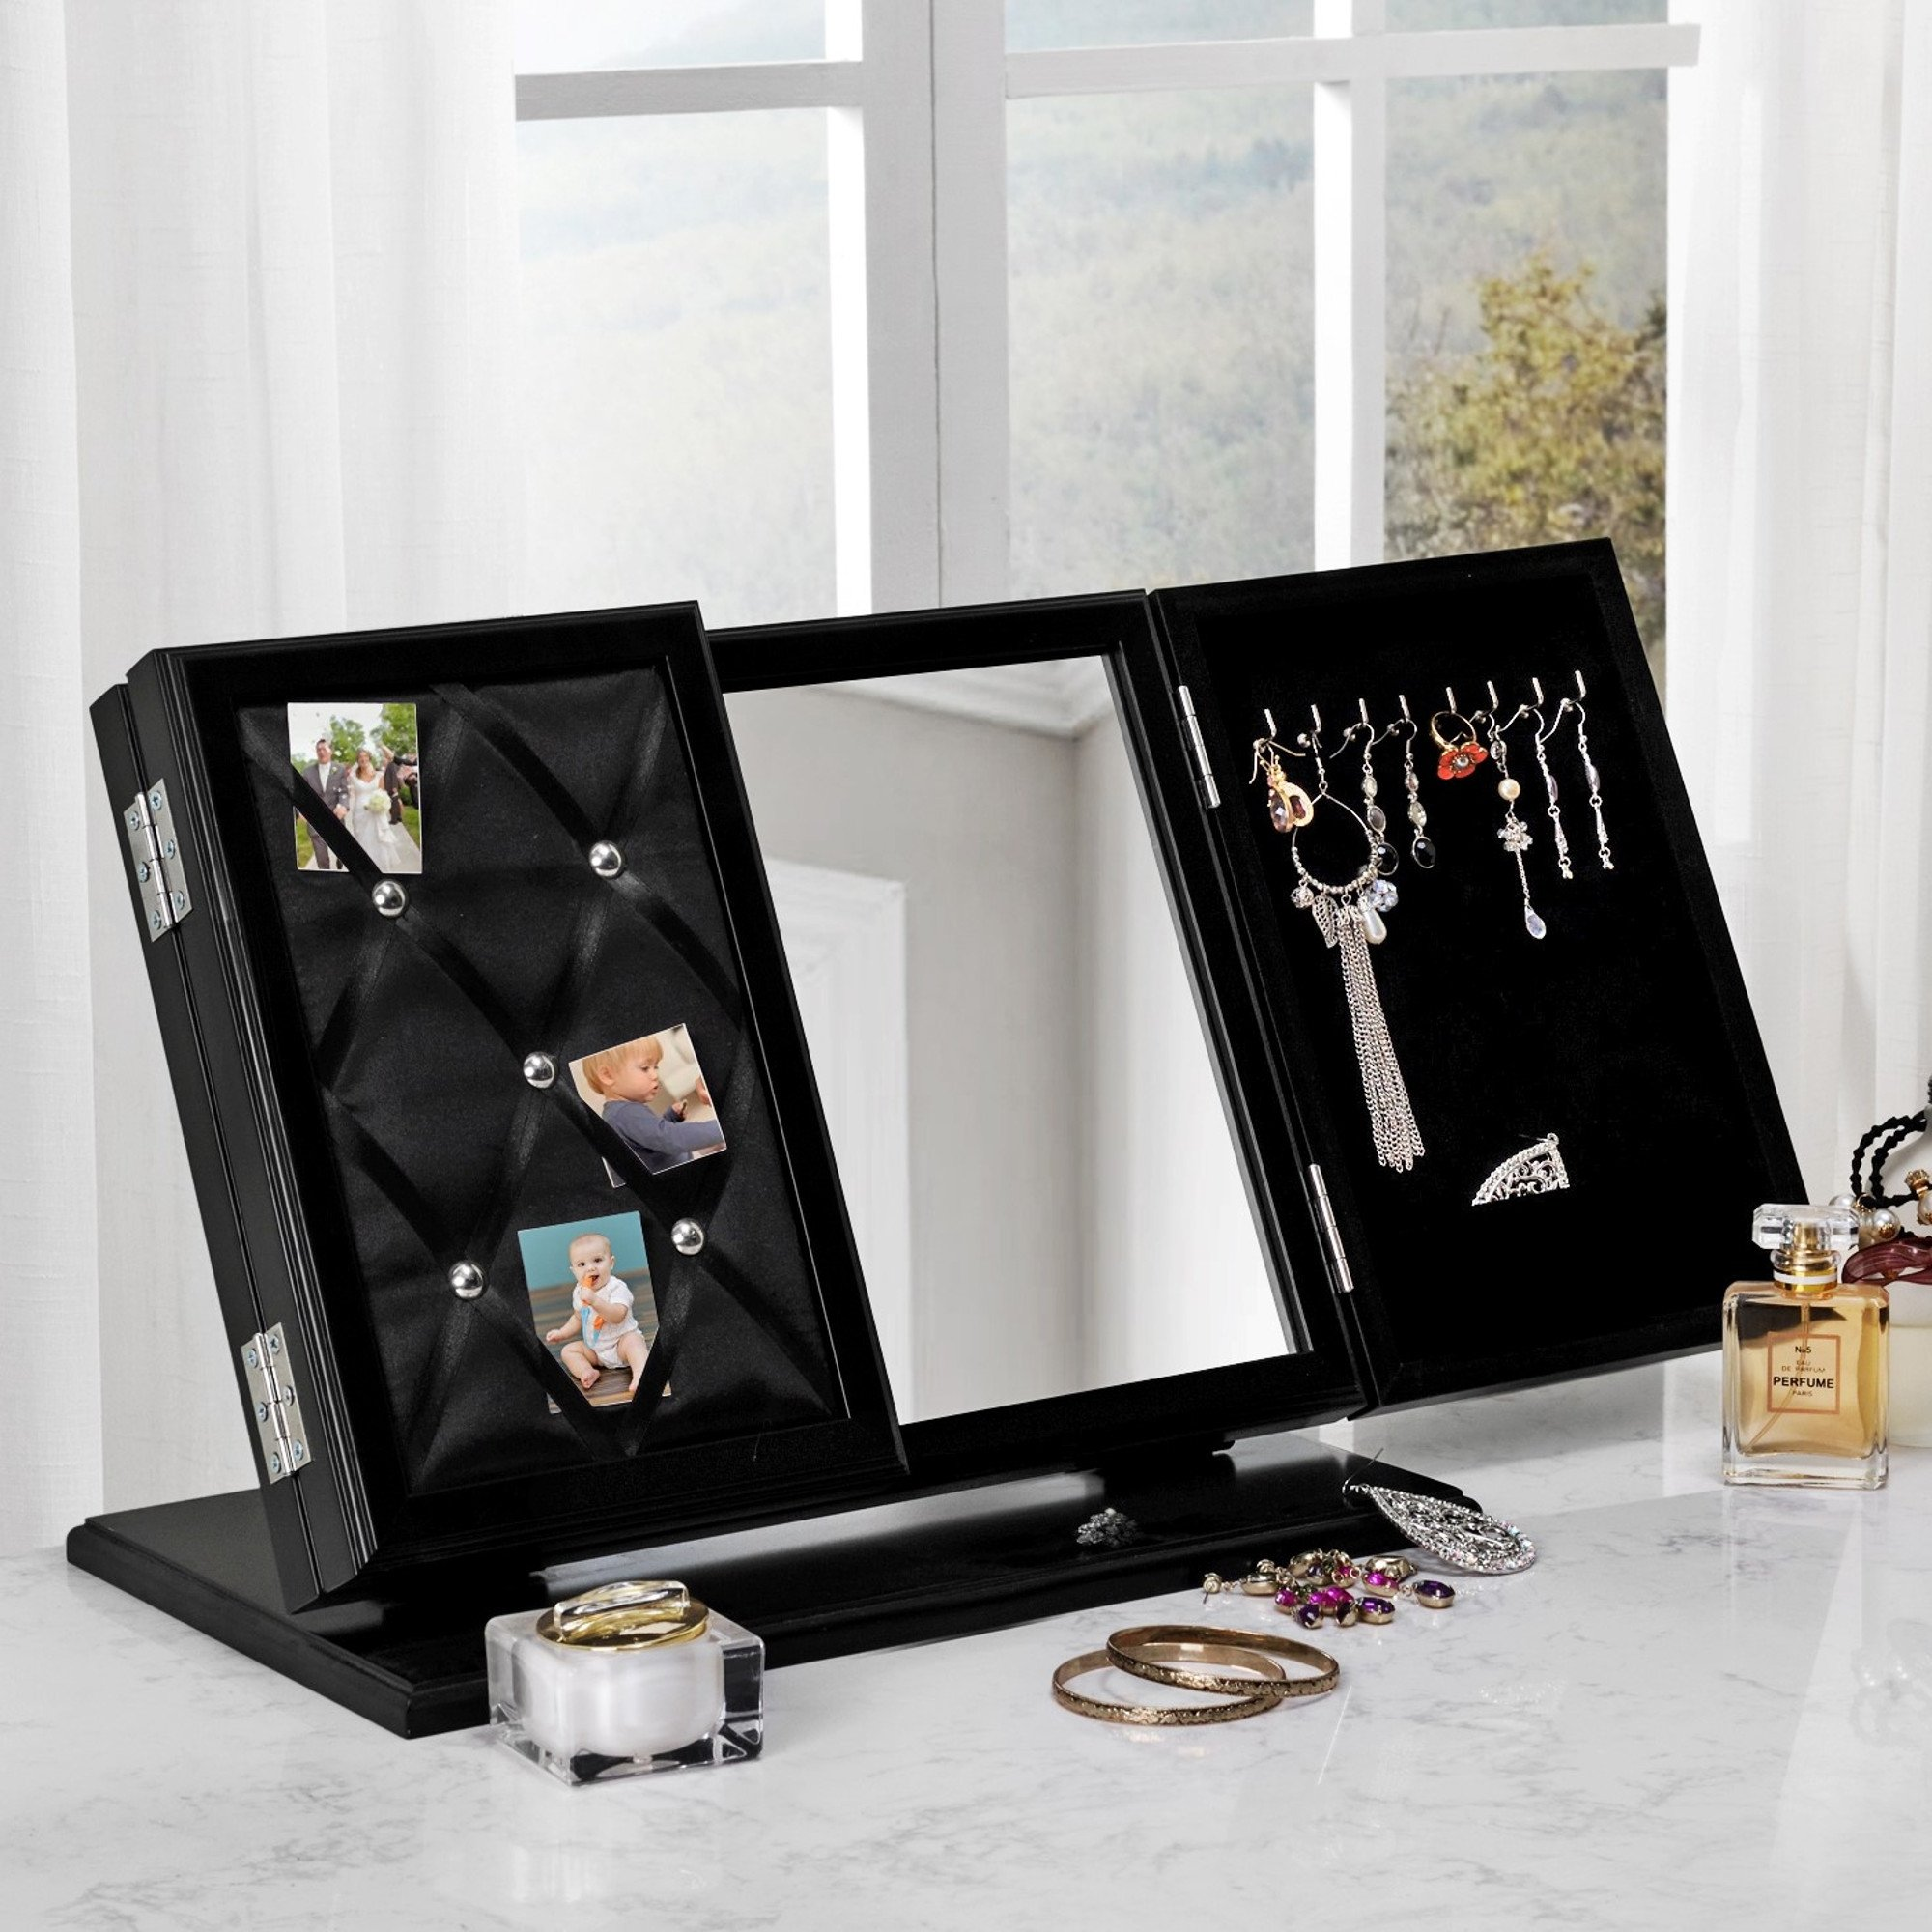 Inspired Home Cindy Modern Contemporary 3-in-1 Trifold Tabletop Vanity Mirror with Jewelry Storage and Memo Board, Black